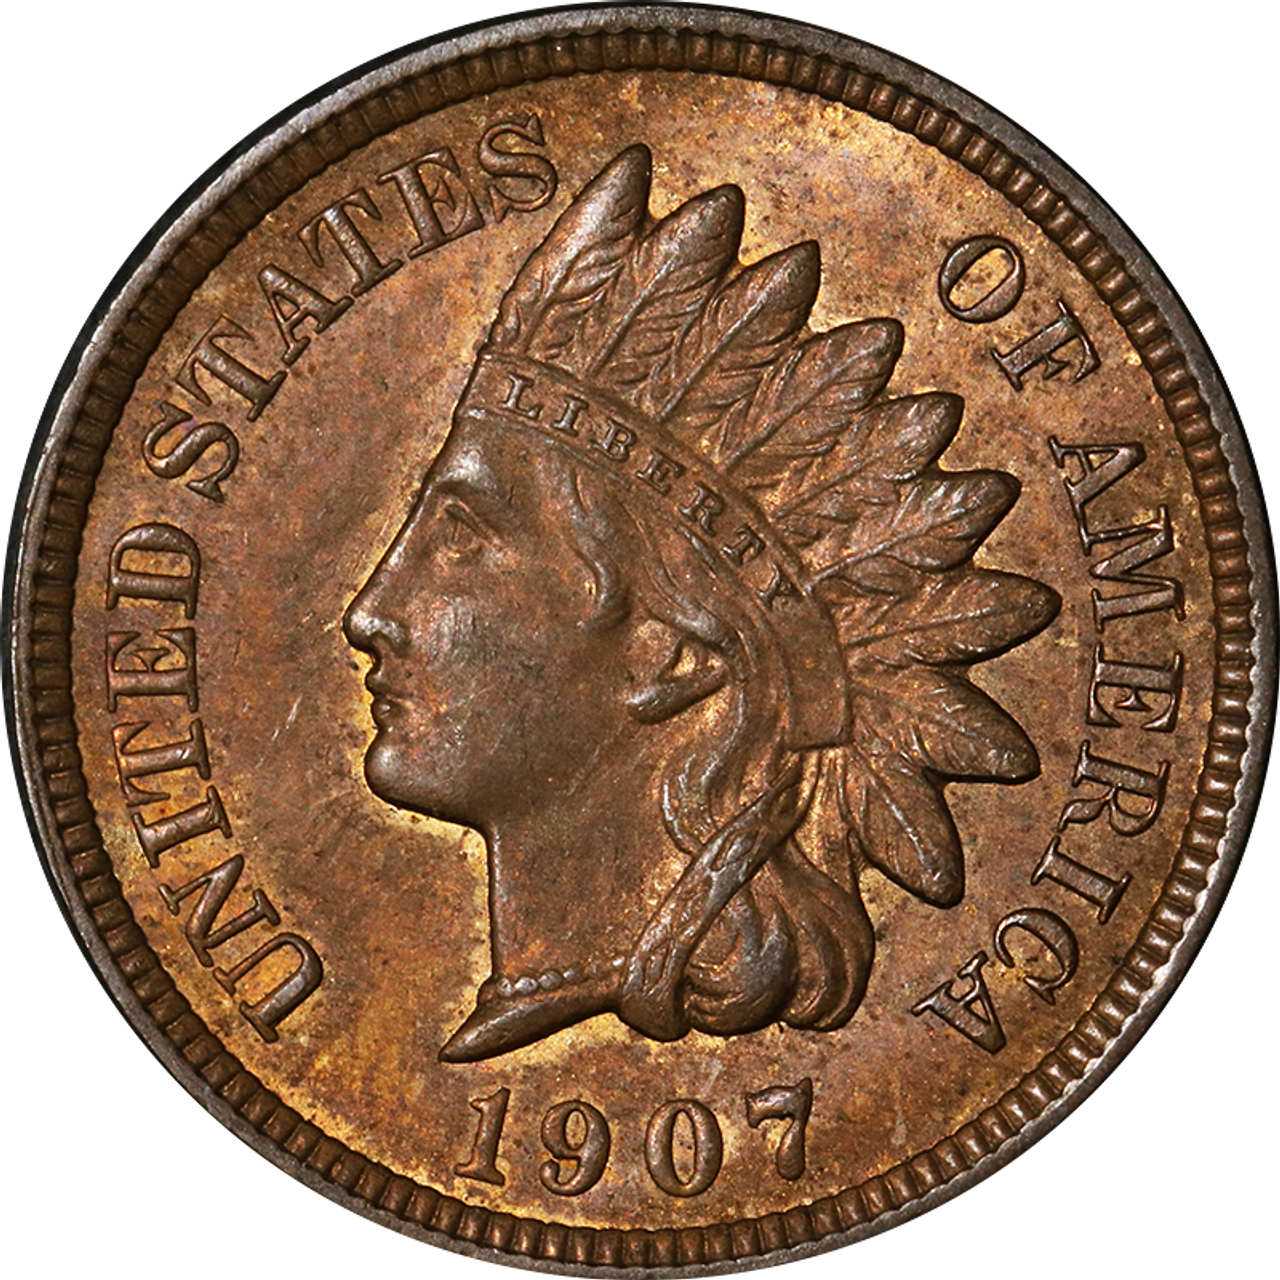 1907 Indian Head Penny Circulated Bullion Shark,Pictures Of Ribs On The Grill